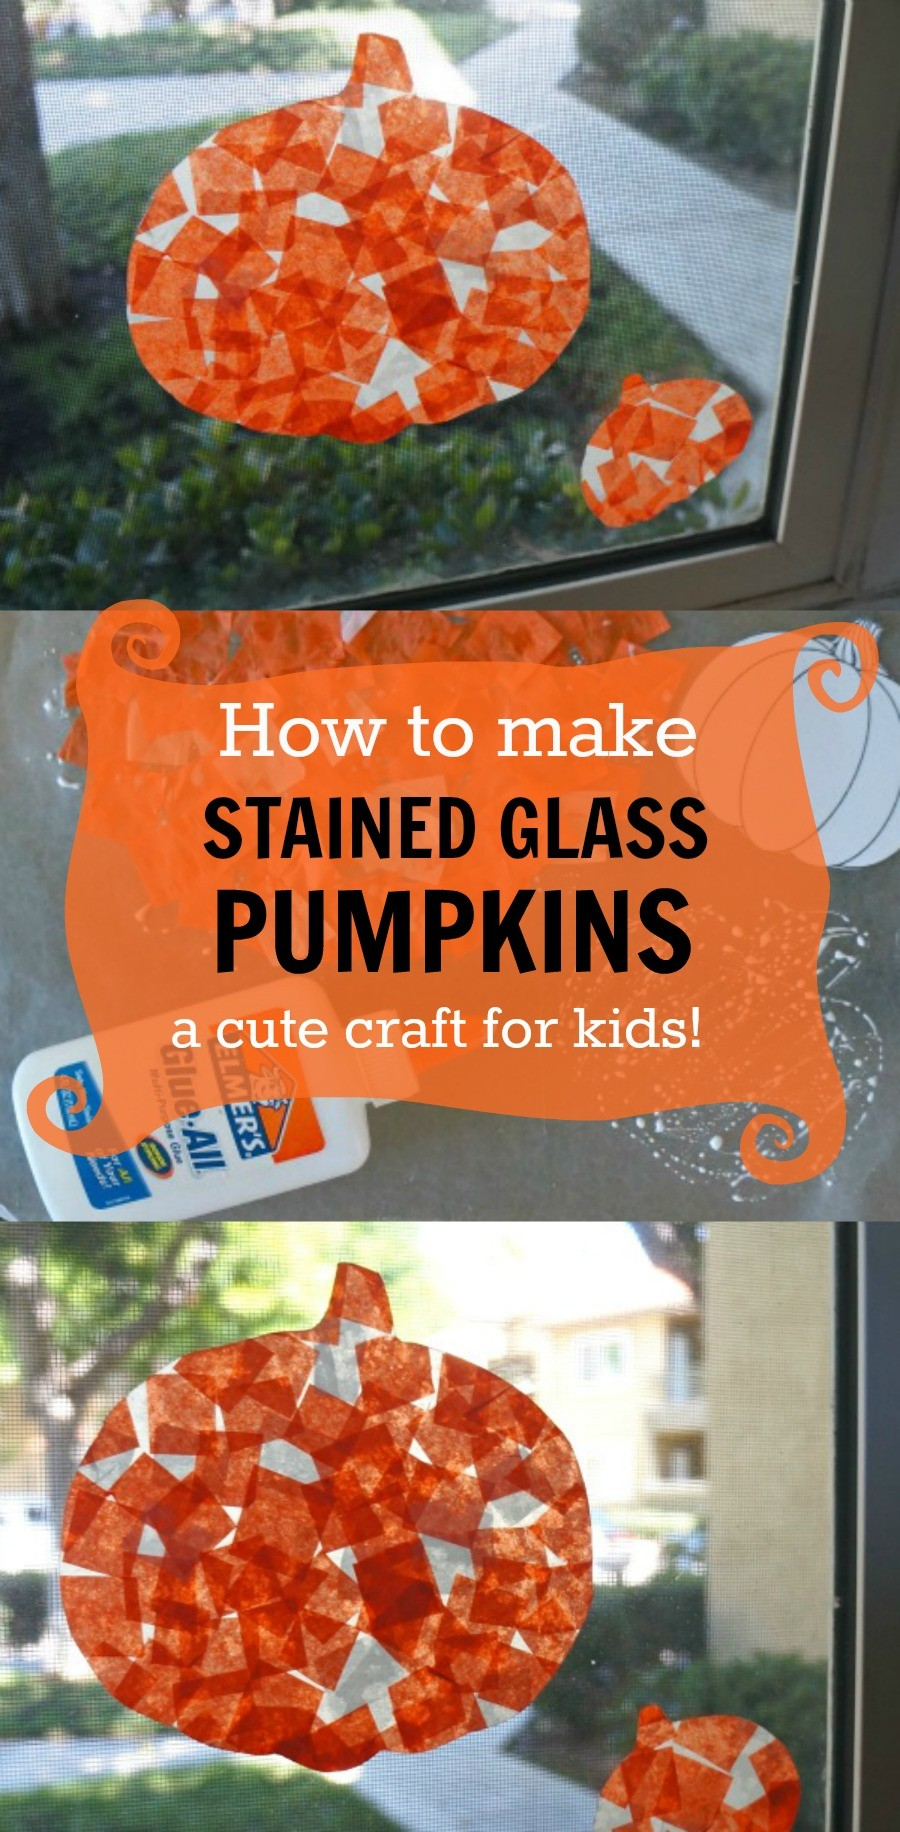 Pumpkin Stained Glass Tissue Paper Craft for Kids - honeyandlime.co | pumpkin suncatcher | stained glass pumpkins | tissue paper pumpkins | diy stained glass crafts | pumpkin crafts for preschoolers